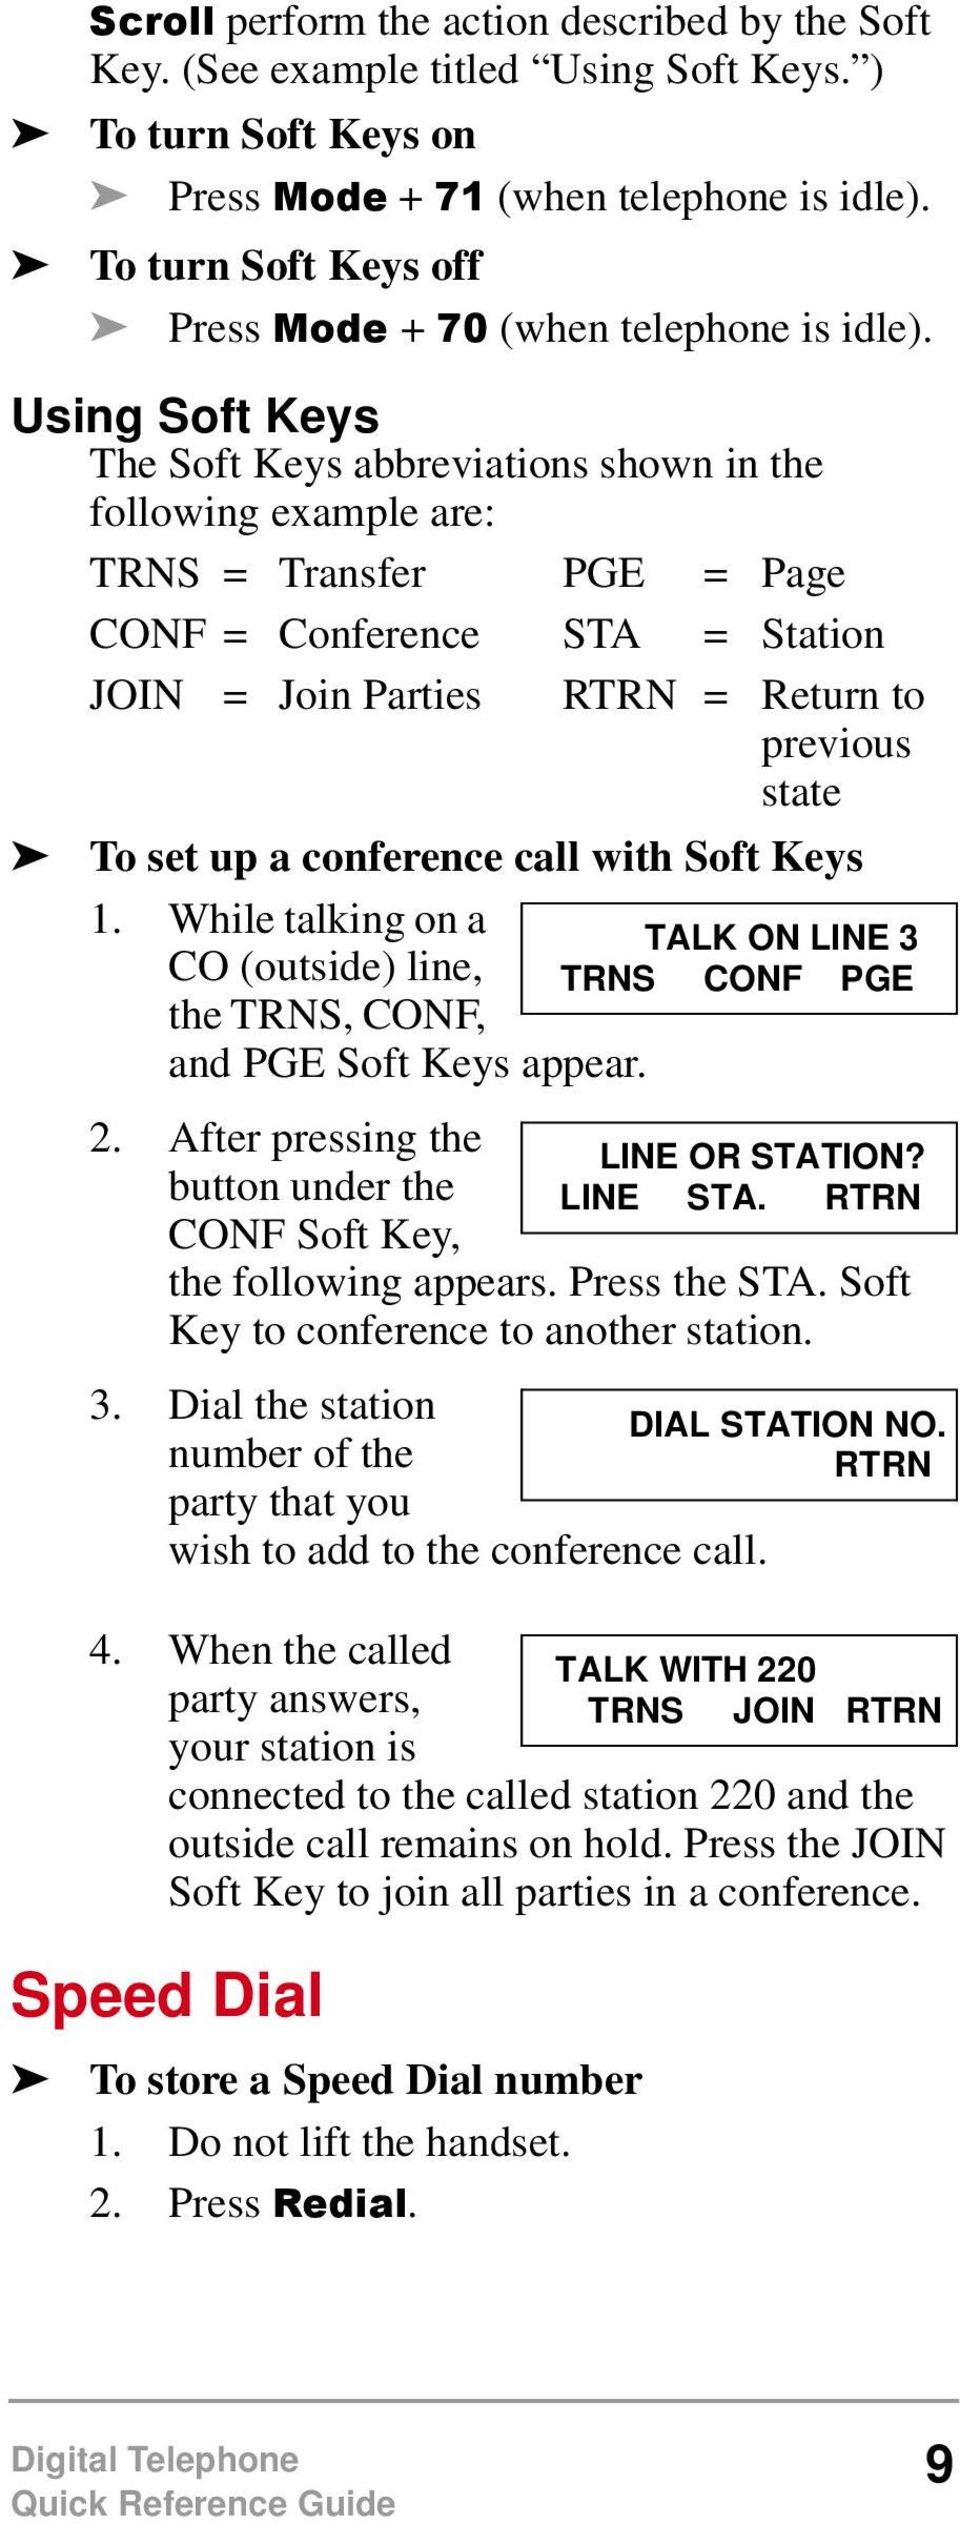 Using Soft Keys The Soft Keys abbreviations shown in the following example are: TRNS = Transfer PGE = Page CONF = Conference STA = Station JOIN = Join Parties RTRN = Return to previous state To set